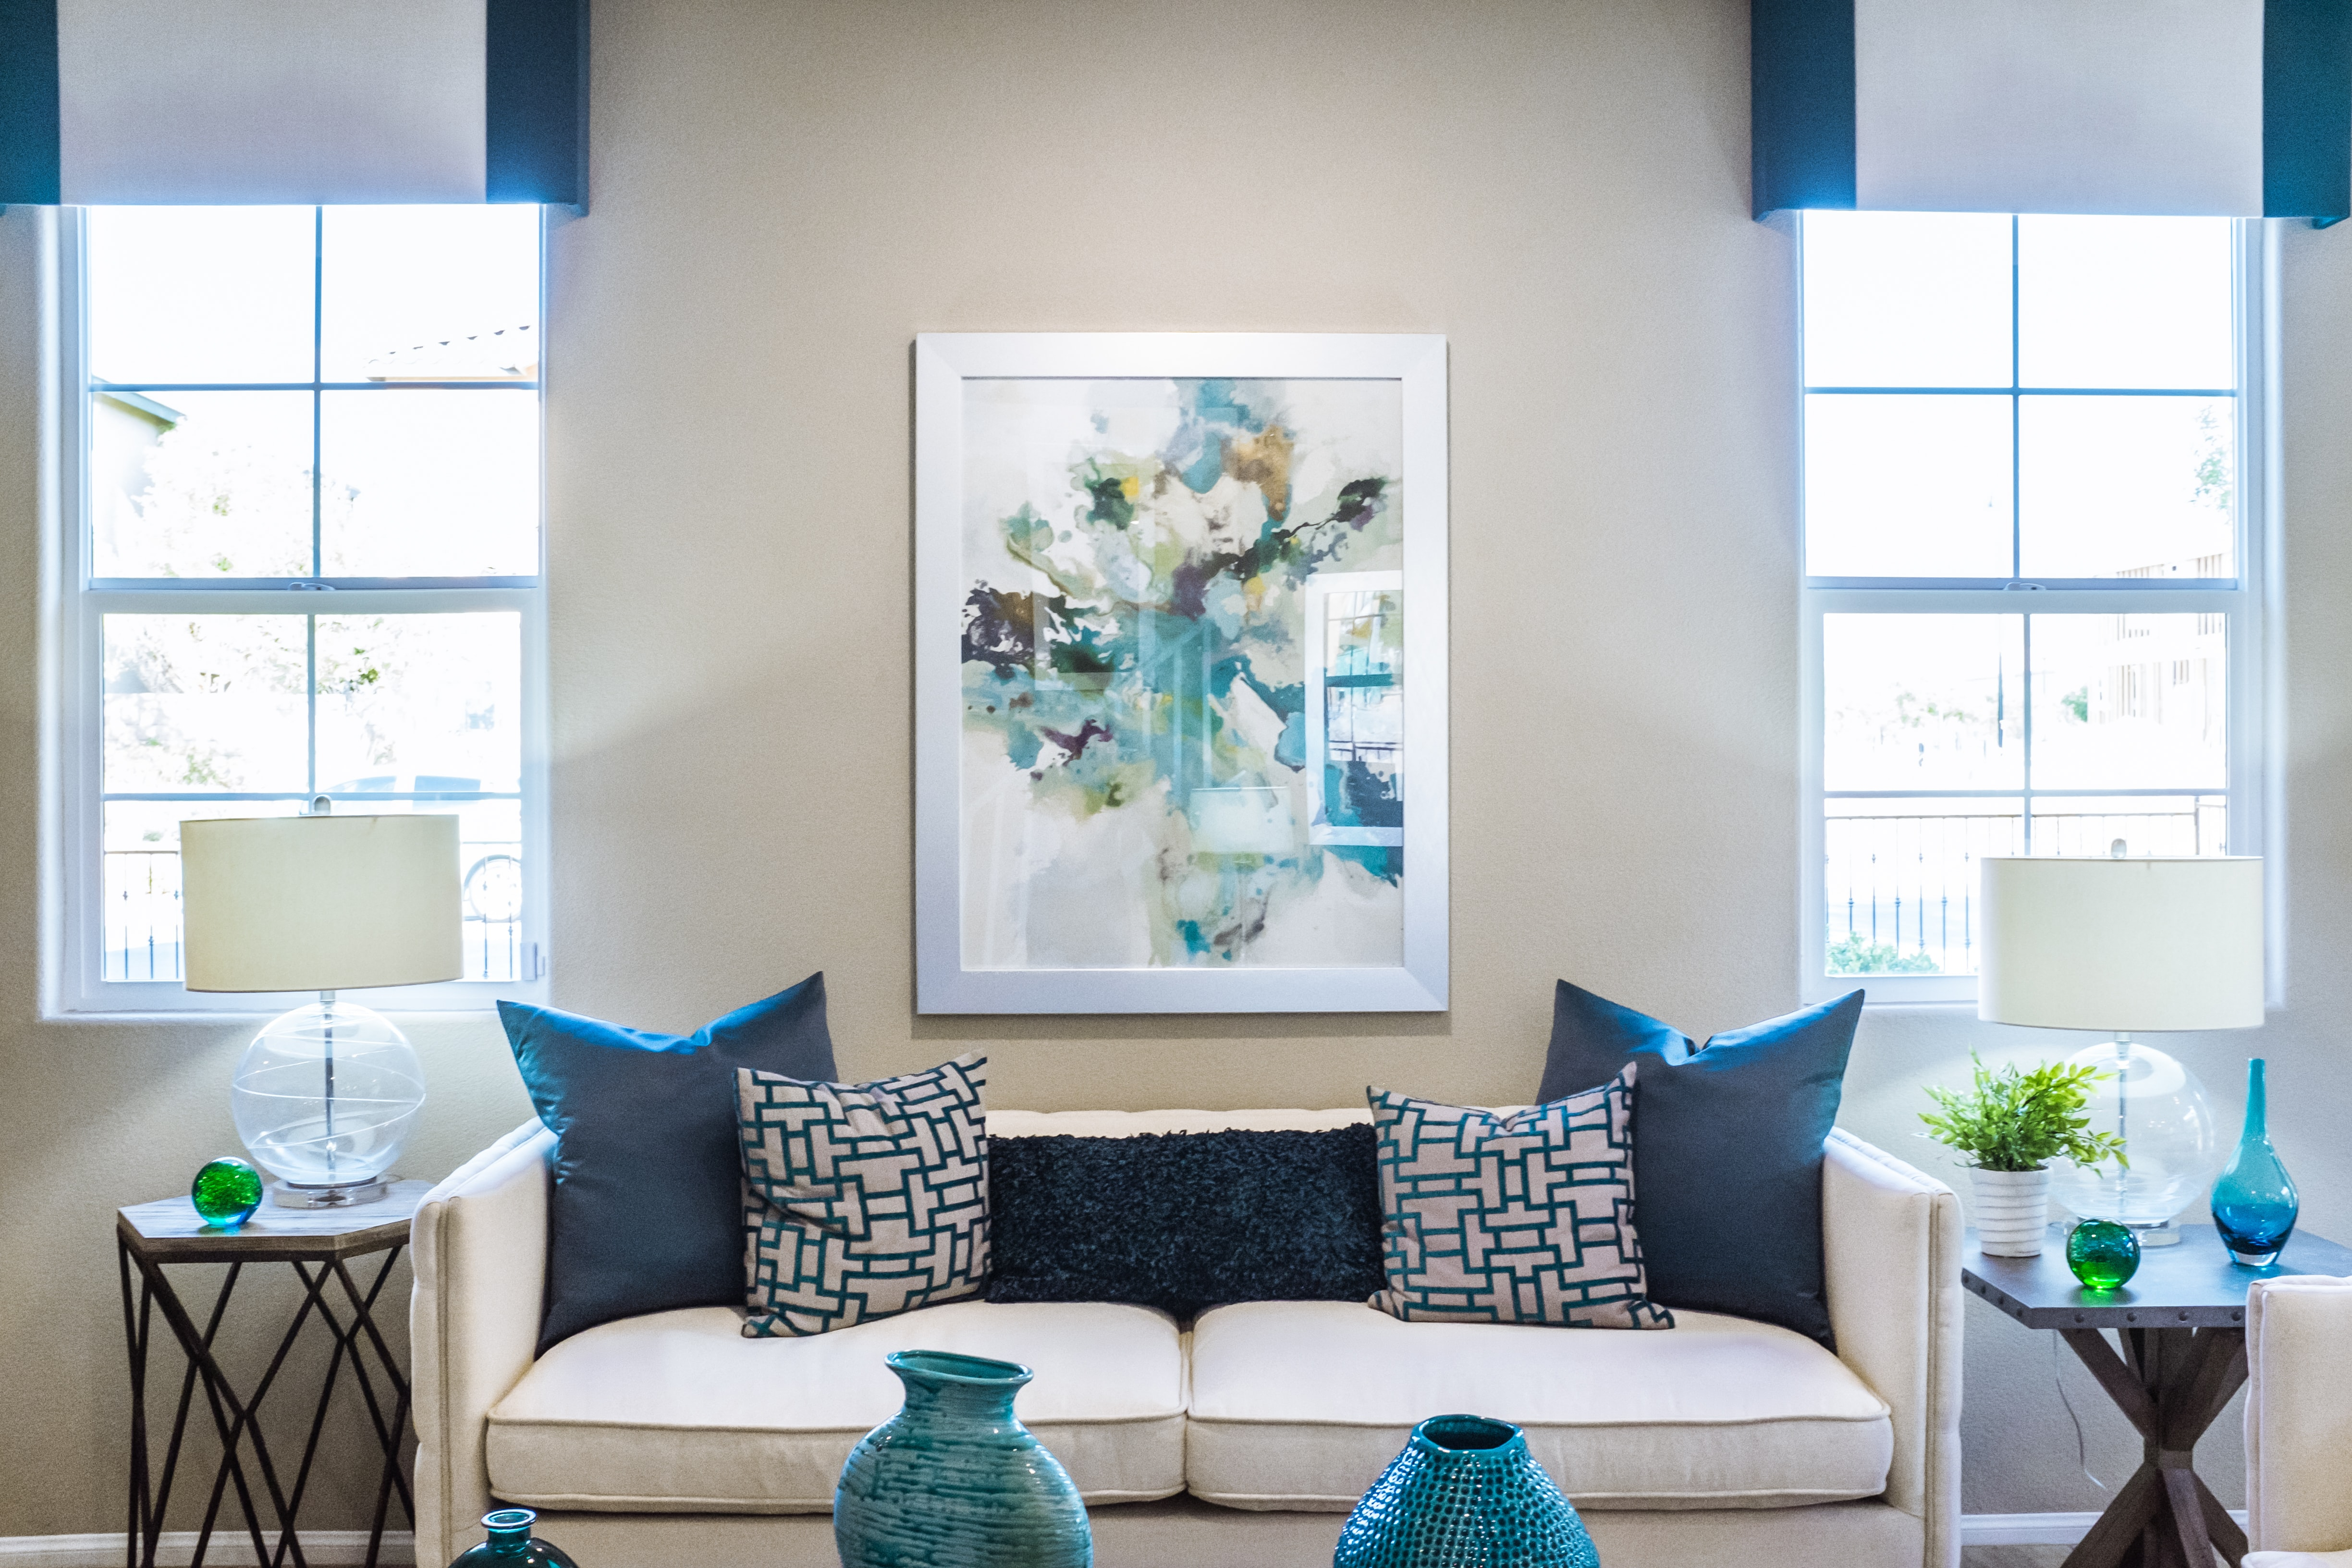 Moving into a smaller space in Newark will get you creative with the decor.